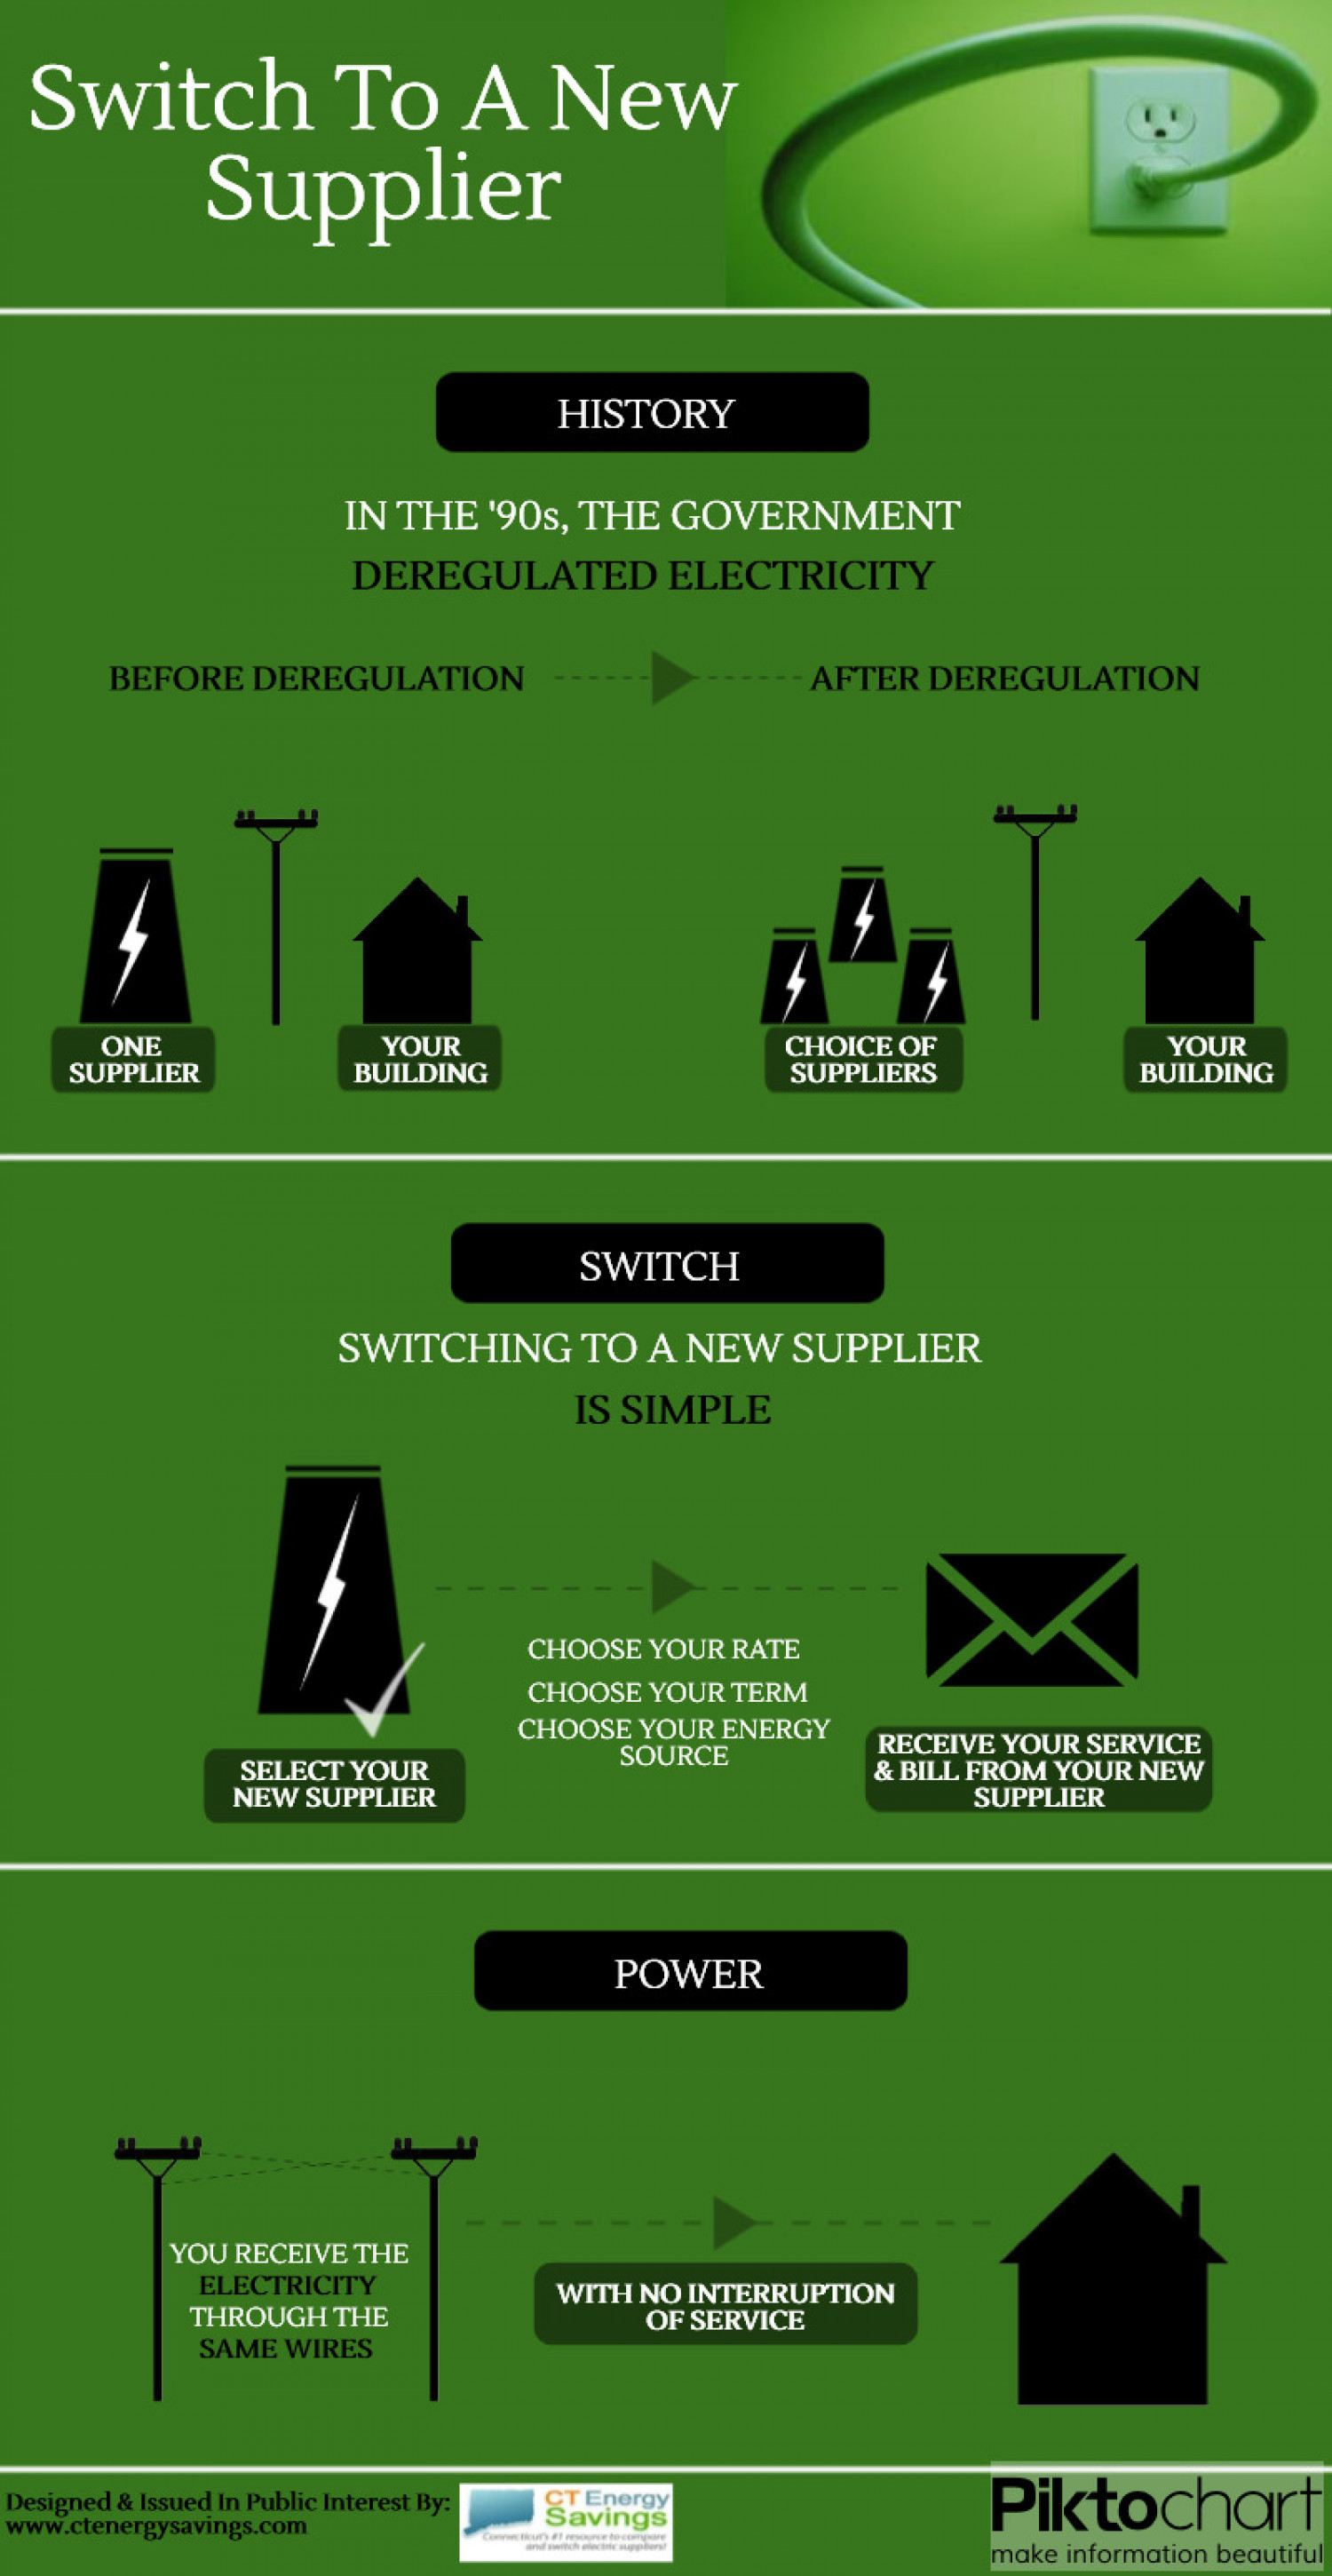 Switch To a New Supplier Infographic